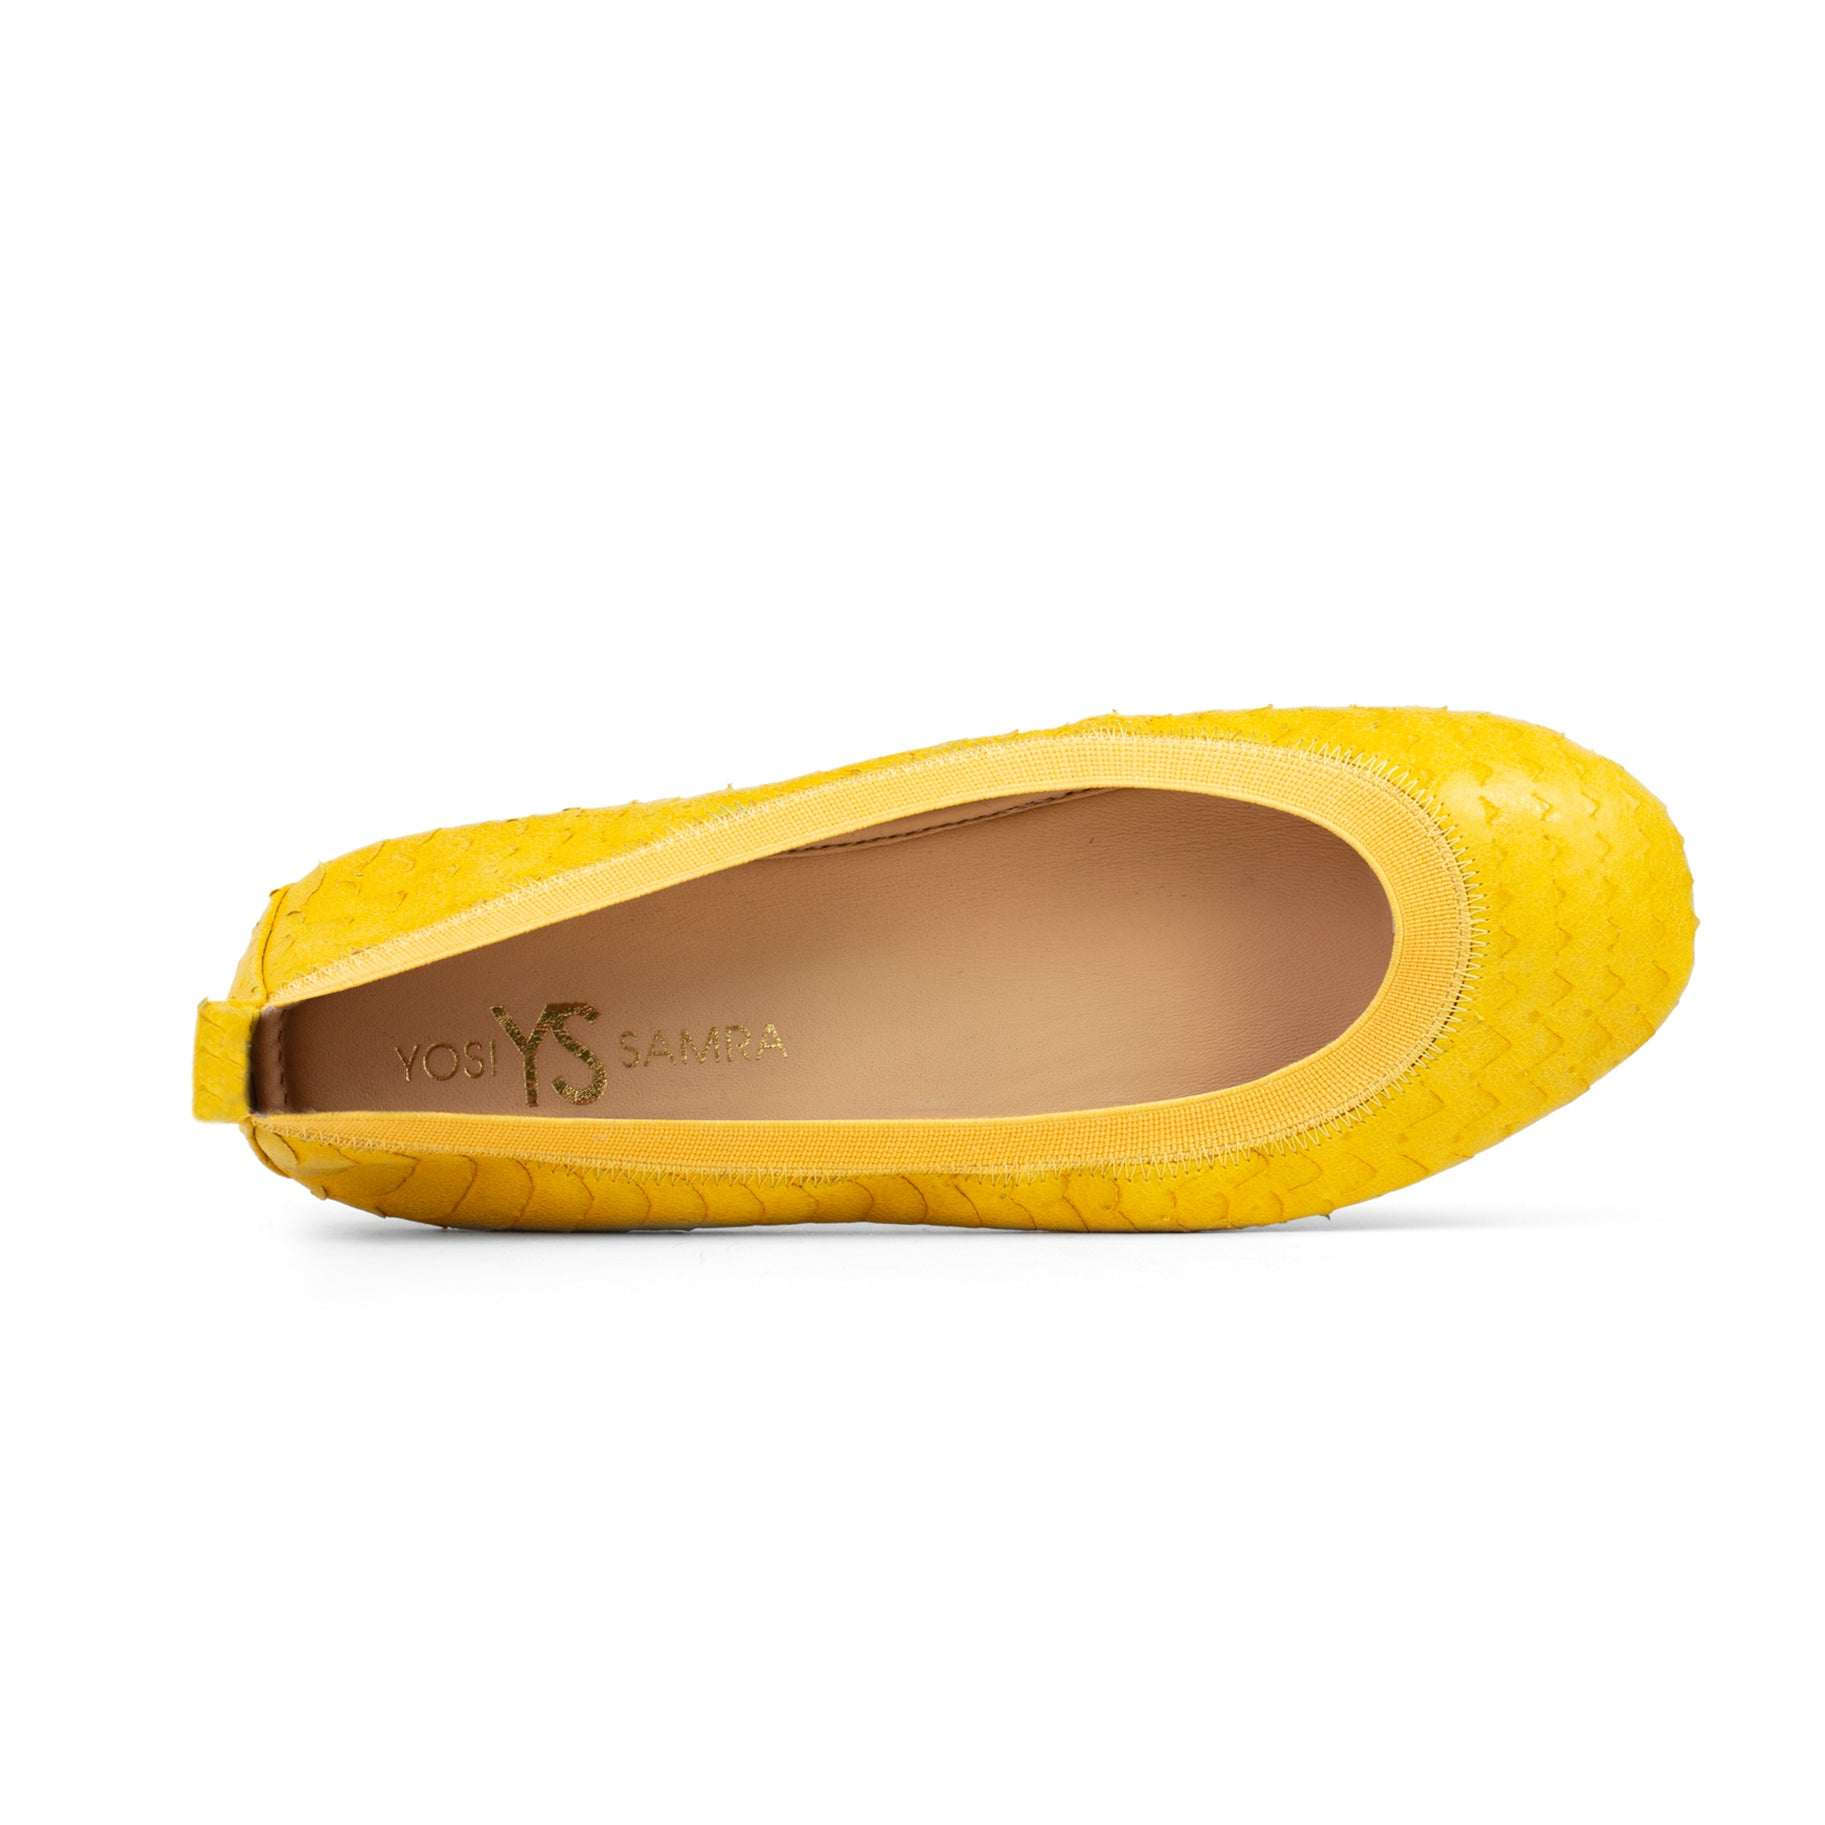 Samara Yellow Scaled Leather Ballet Flat